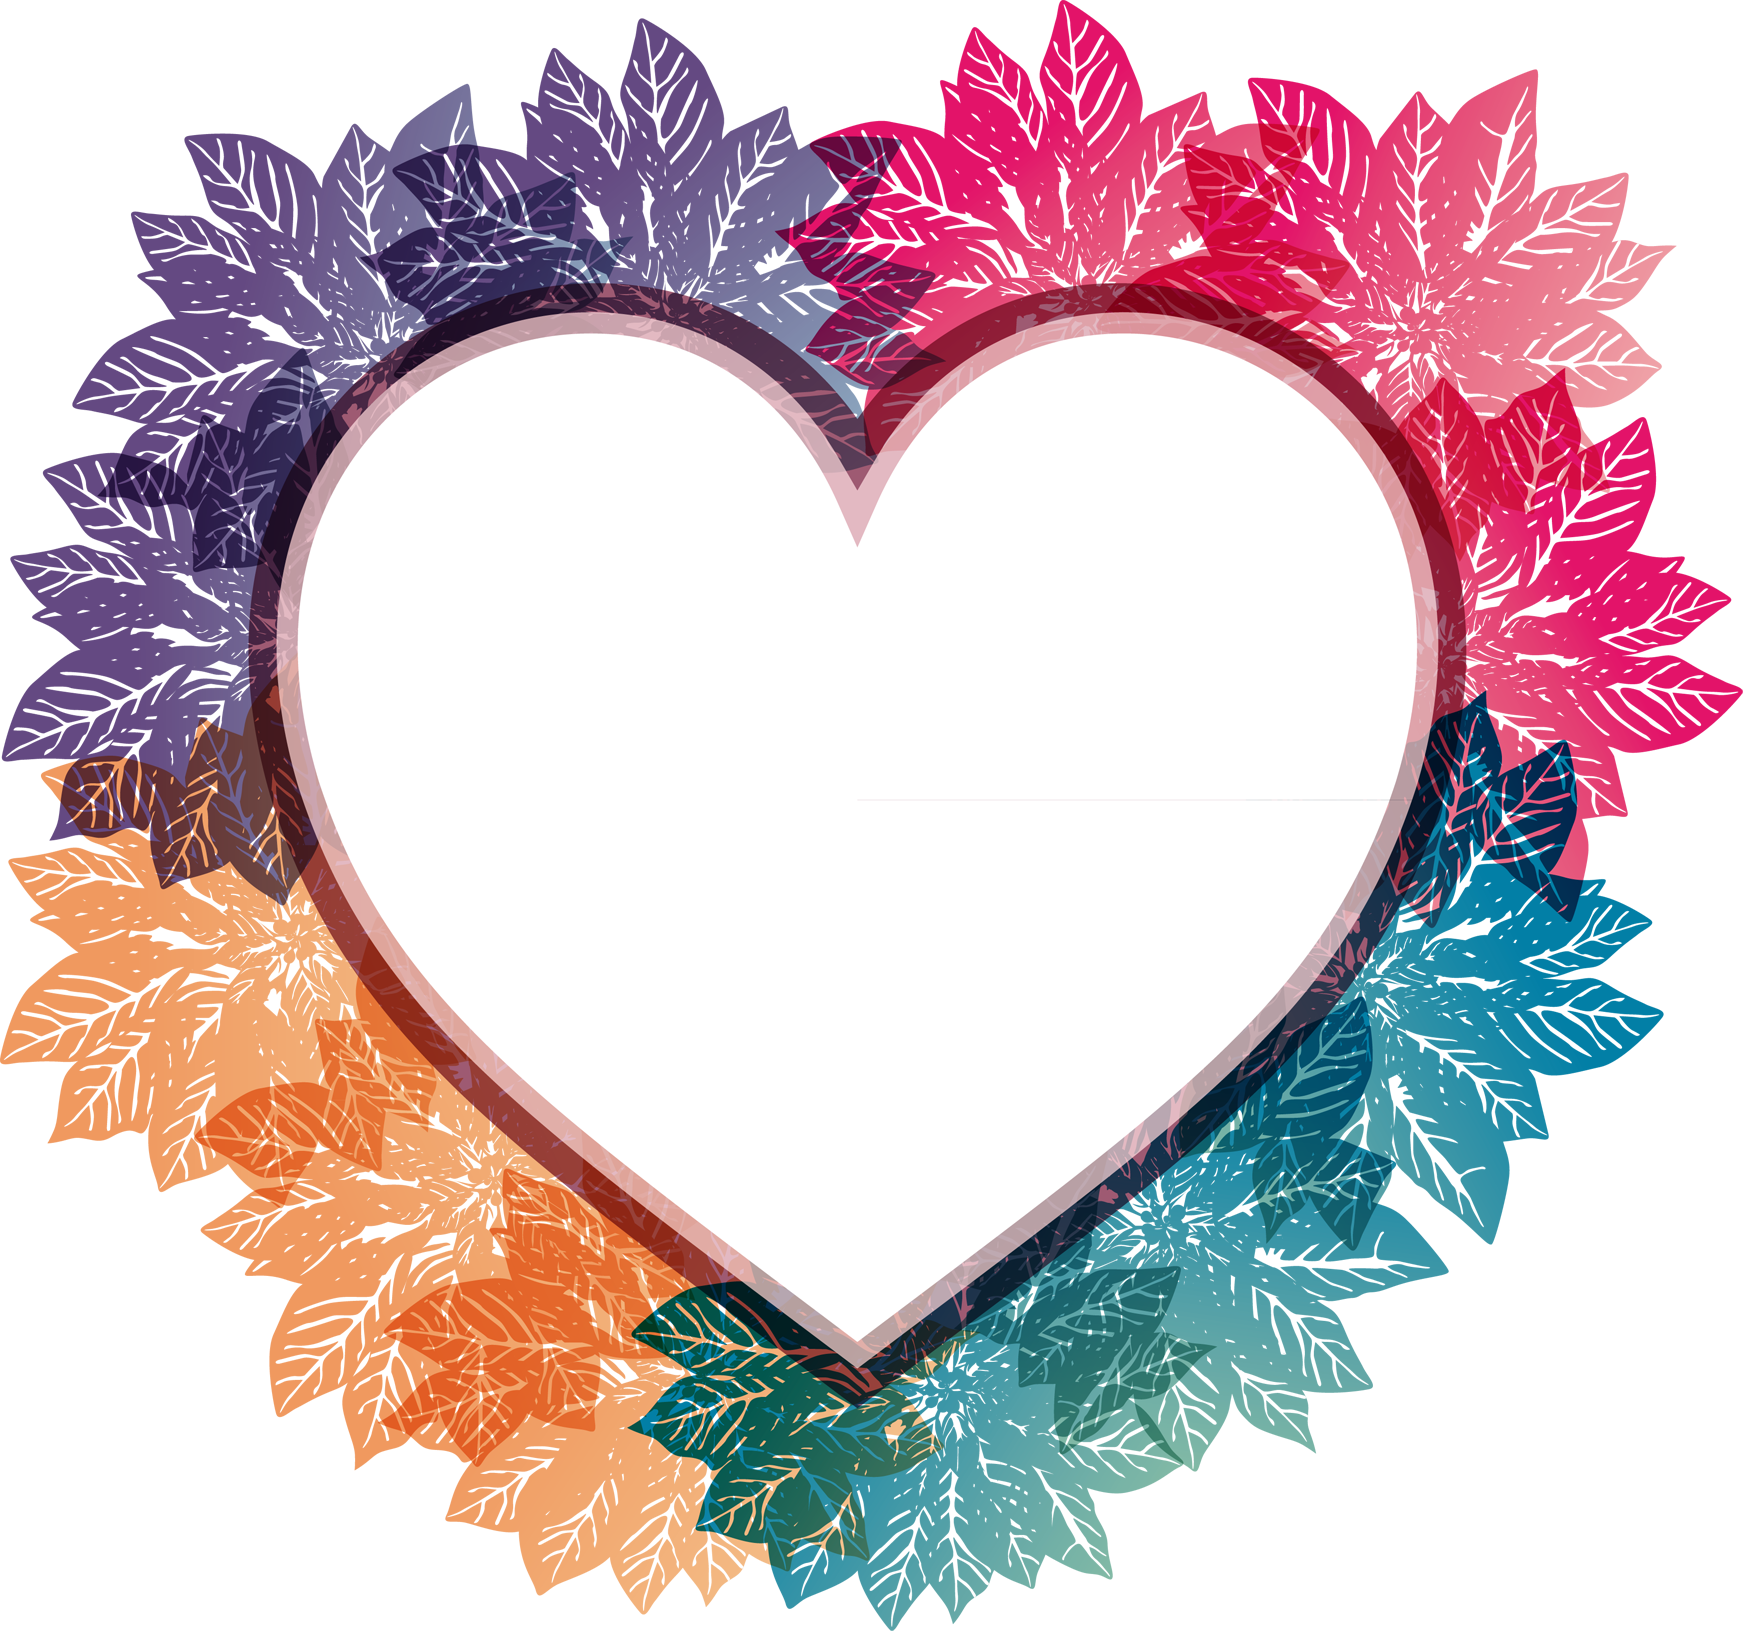 Heart shaped border clipart png royalty free library Picture frame Heart Clip art - heart-shaped artwork leaves border ... png royalty free library